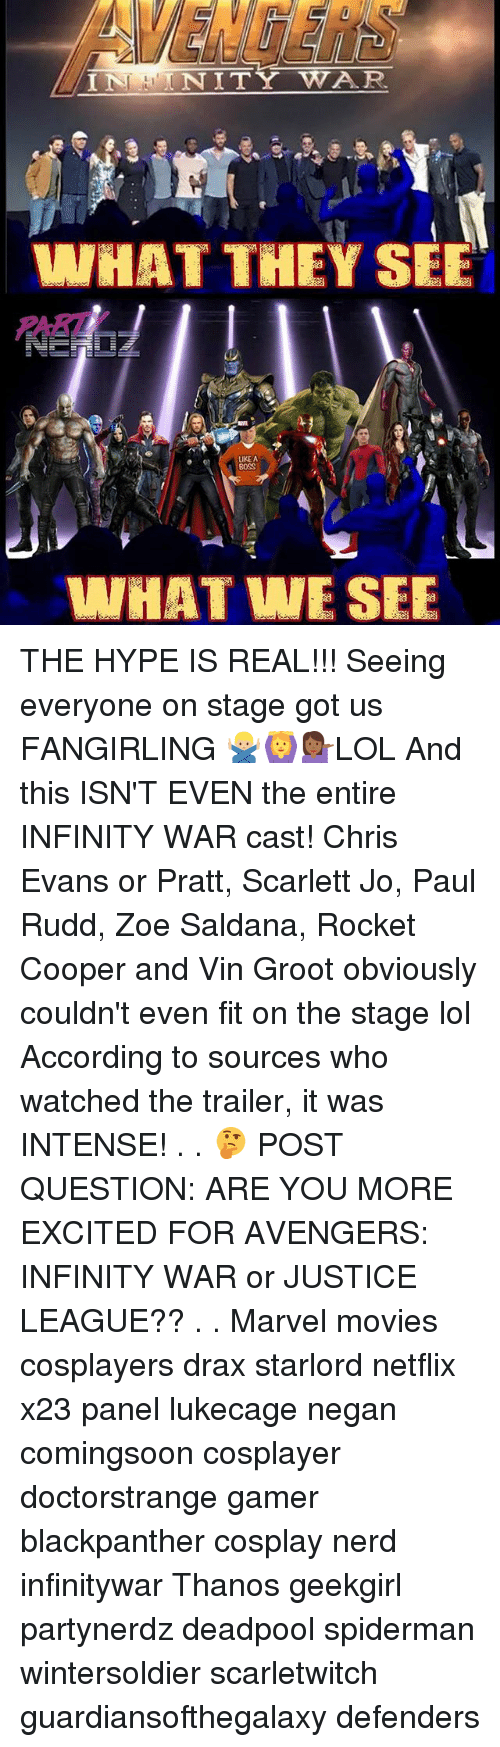 scarlette: AVENGER  PART  UKE A  0SS  WHATWE SEE THE HYPE IS REAL!!! Seeing everyone on stage got us FANGIRLING 🙅🏼♂️🙆💁🏾♀️LOL And this ISN'T EVEN the entire INFINITY WAR cast! Chris Evans or Pratt, Scarlett Jo, Paul Rudd, Zoe Saldana, Rocket Cooper and Vin Groot obviously couldn't even fit on the stage lol According to sources who watched the trailer, it was INTENSE! . . 🤔 POST QUESTION: ARE YOU MORE EXCITED FOR AVENGERS: INFINITY WAR or JUSTICE LEAGUE?? . . Marvel movies cosplayers drax starlord netflix x23 panel lukecage negan comingsoon cosplayer doctorstrange gamer blackpanther cosplay nerd infinitywar Thanos geekgirl partynerdz deadpool spiderman wintersoldier scarletwitch guardiansofthegalaxy defenders